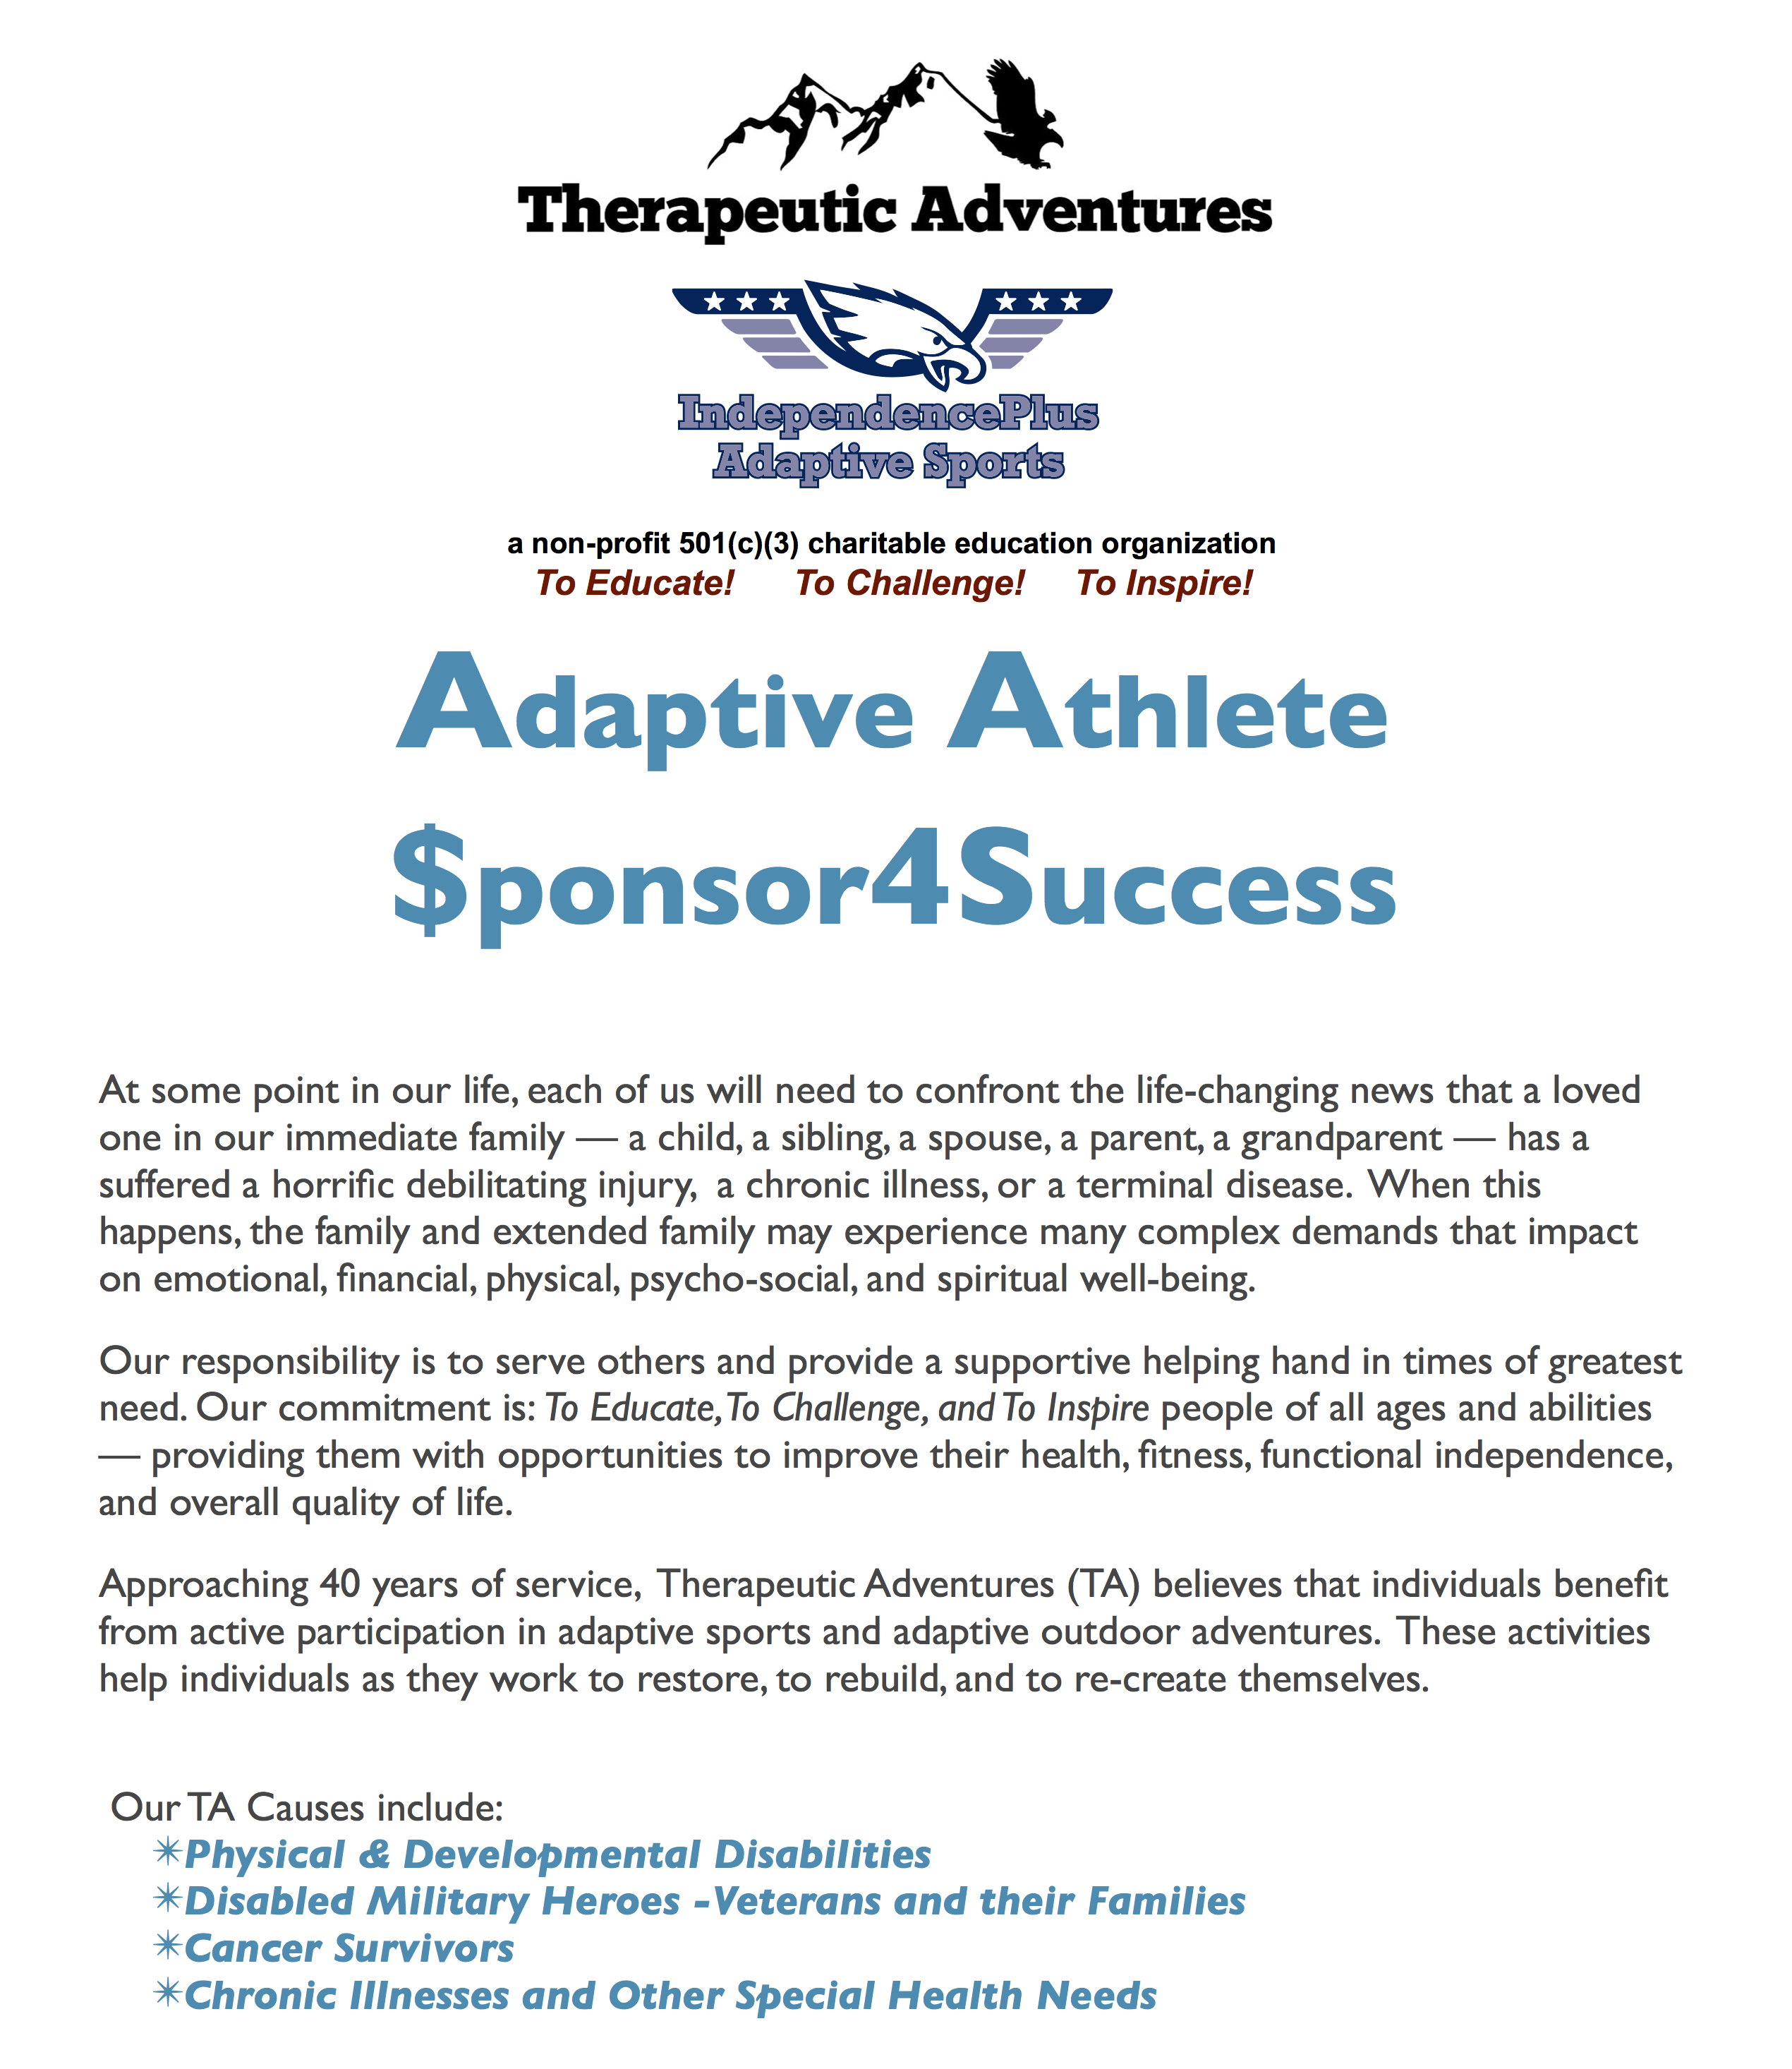 Adaptive Athlete Sponsor4Success 1